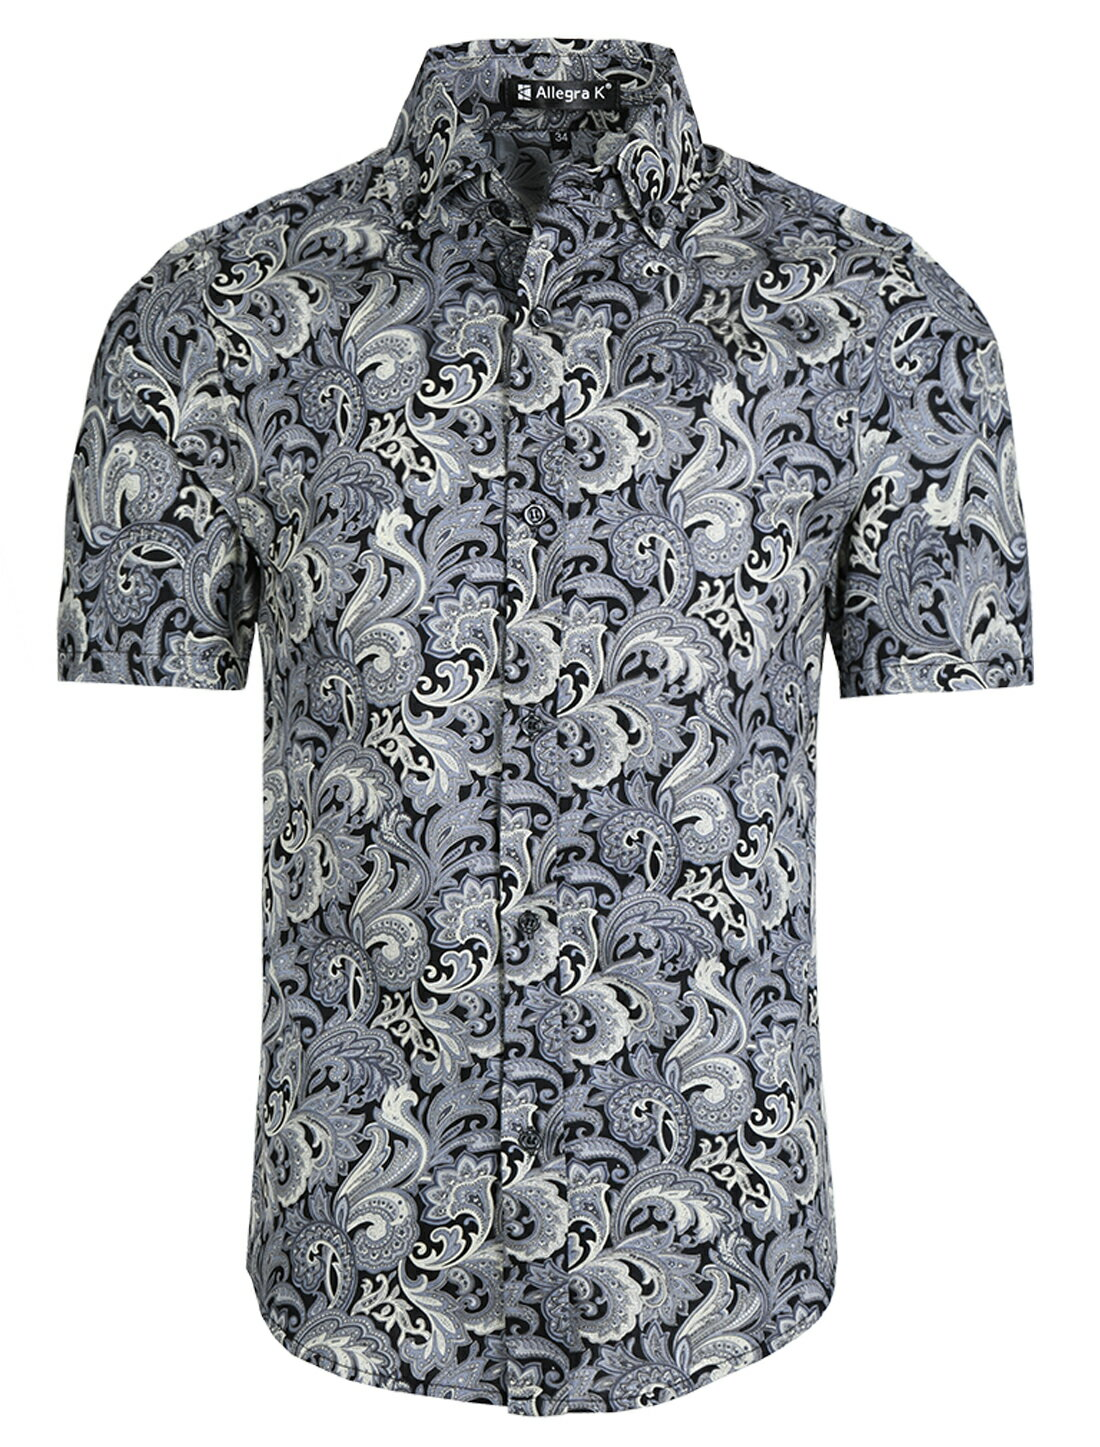 f37c43052 Unique Bargains Men's Summer Button Down Casual Floral Print Short Sleeve  Shirt 0